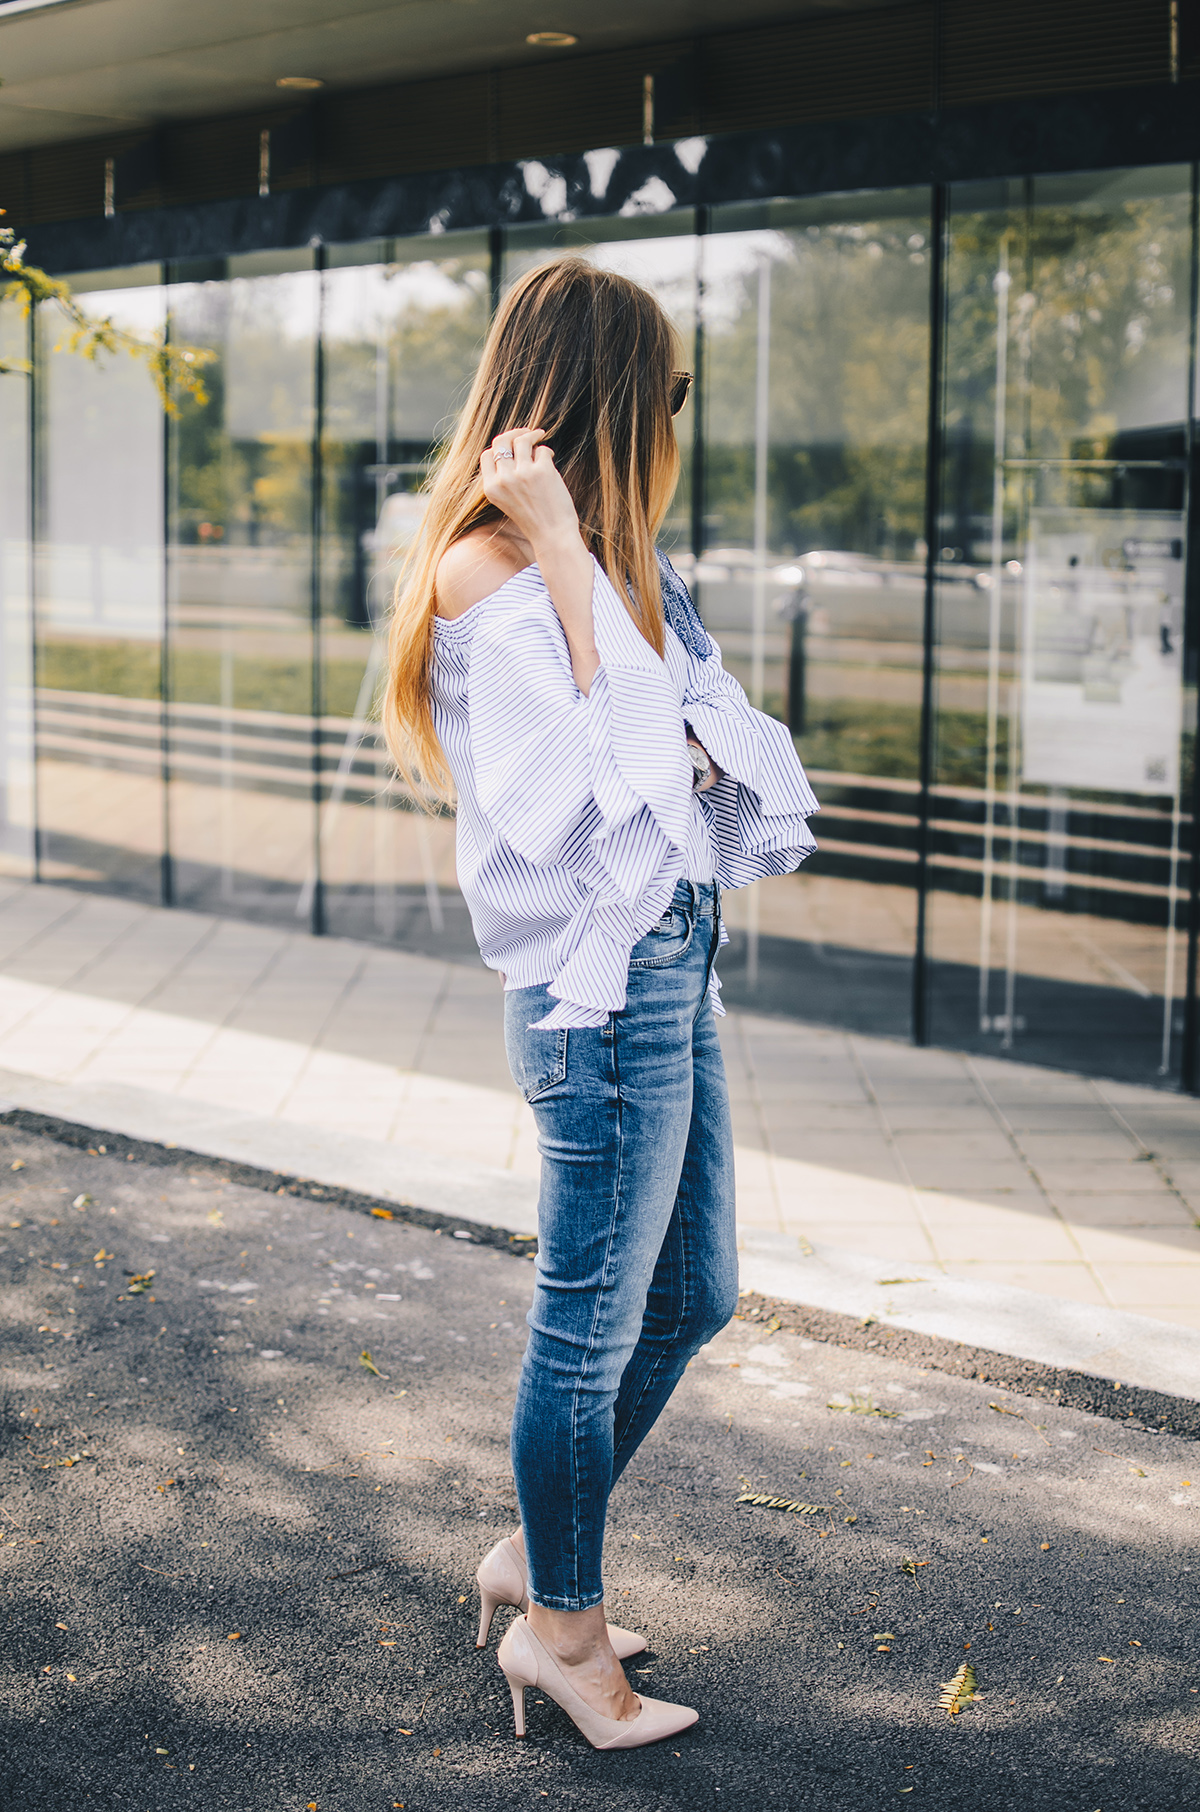 off-shoulder-ruffle-sleeves-zara-jeans-mirroredsunglasses-scarf-4